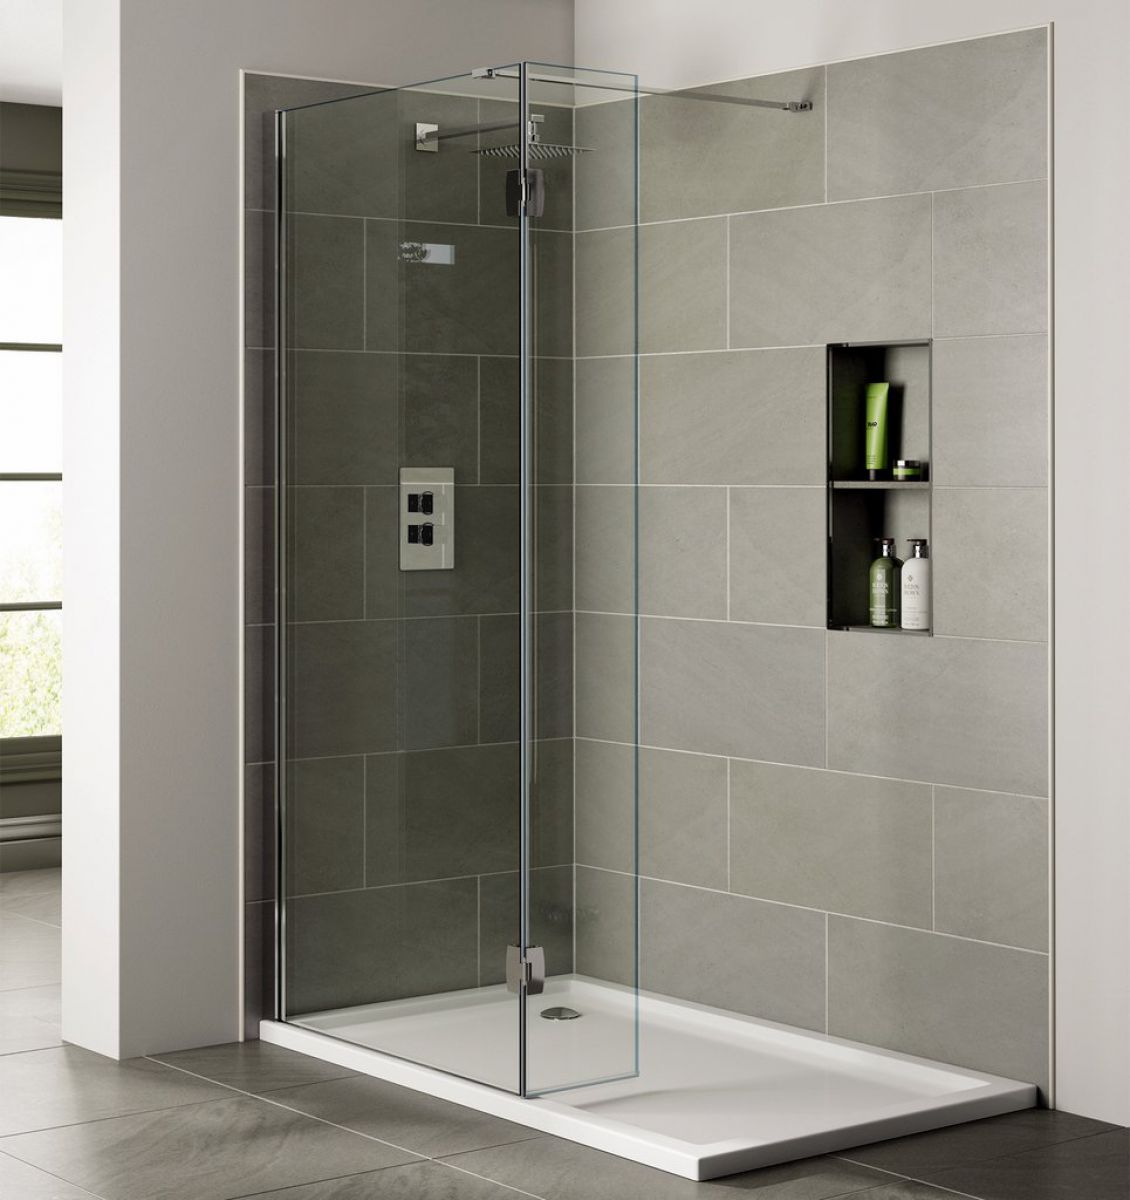 rooms wet colossus shower showers screens panels enclosure roman and room